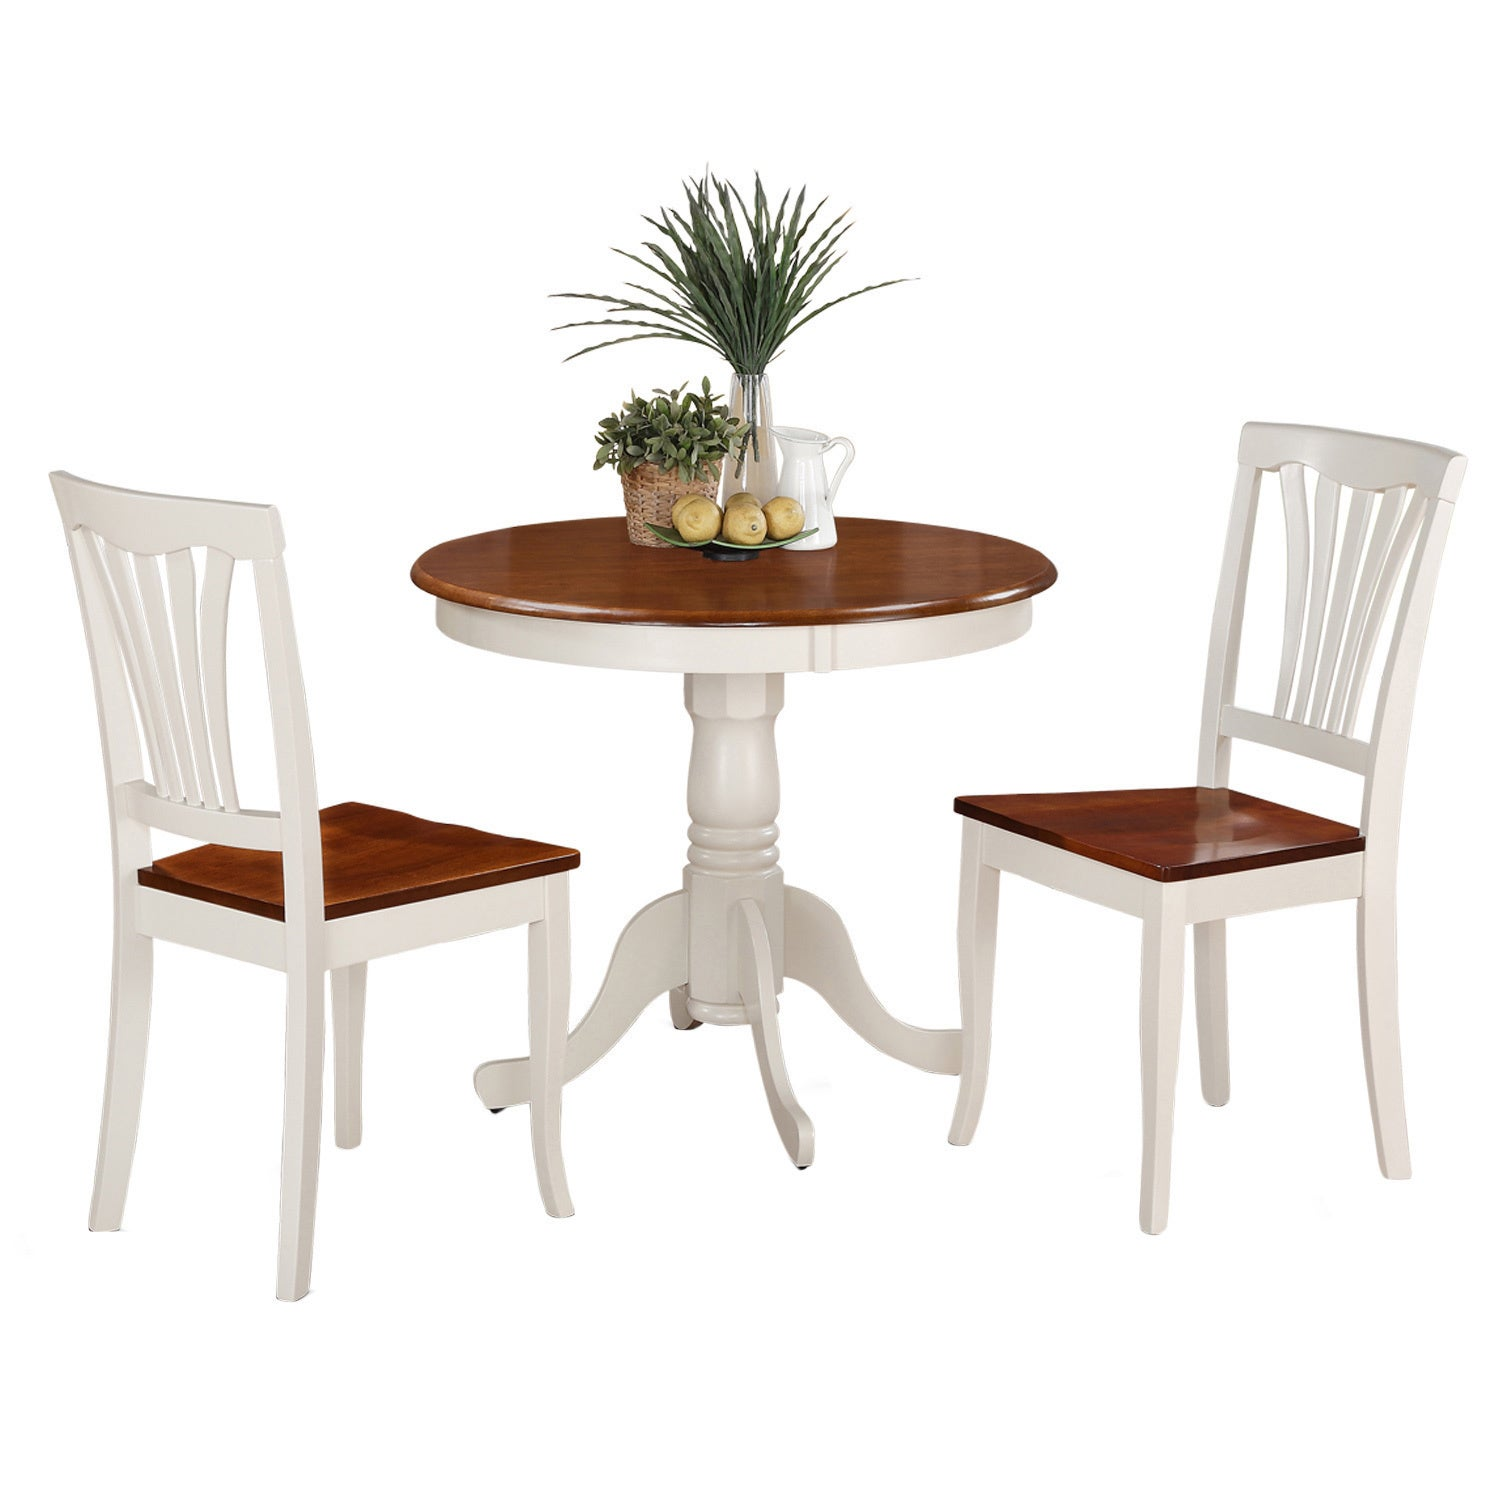 Etonnant Shop 3 Piece Kitchen Nook Dining Set Small Kitchen Table And 2 Kitchen  Chairs   Free Shipping Today   Overstock.com   10200001